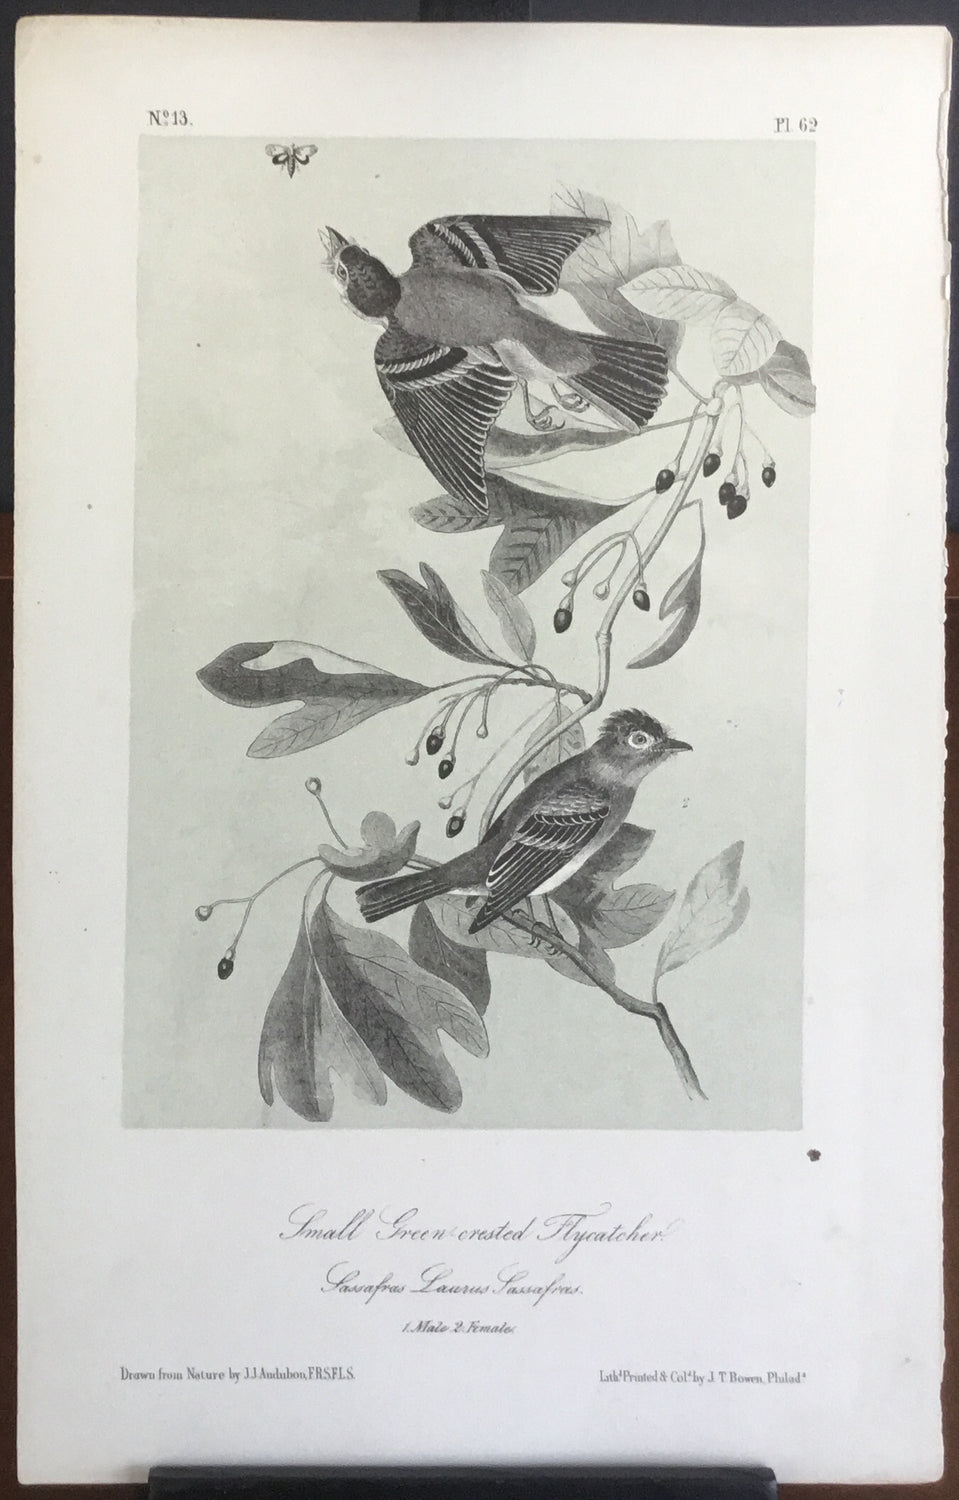 Audubon Octavo Small Green-crested Flycatcher, plate 62, uncolored test sheet. 7 x 11